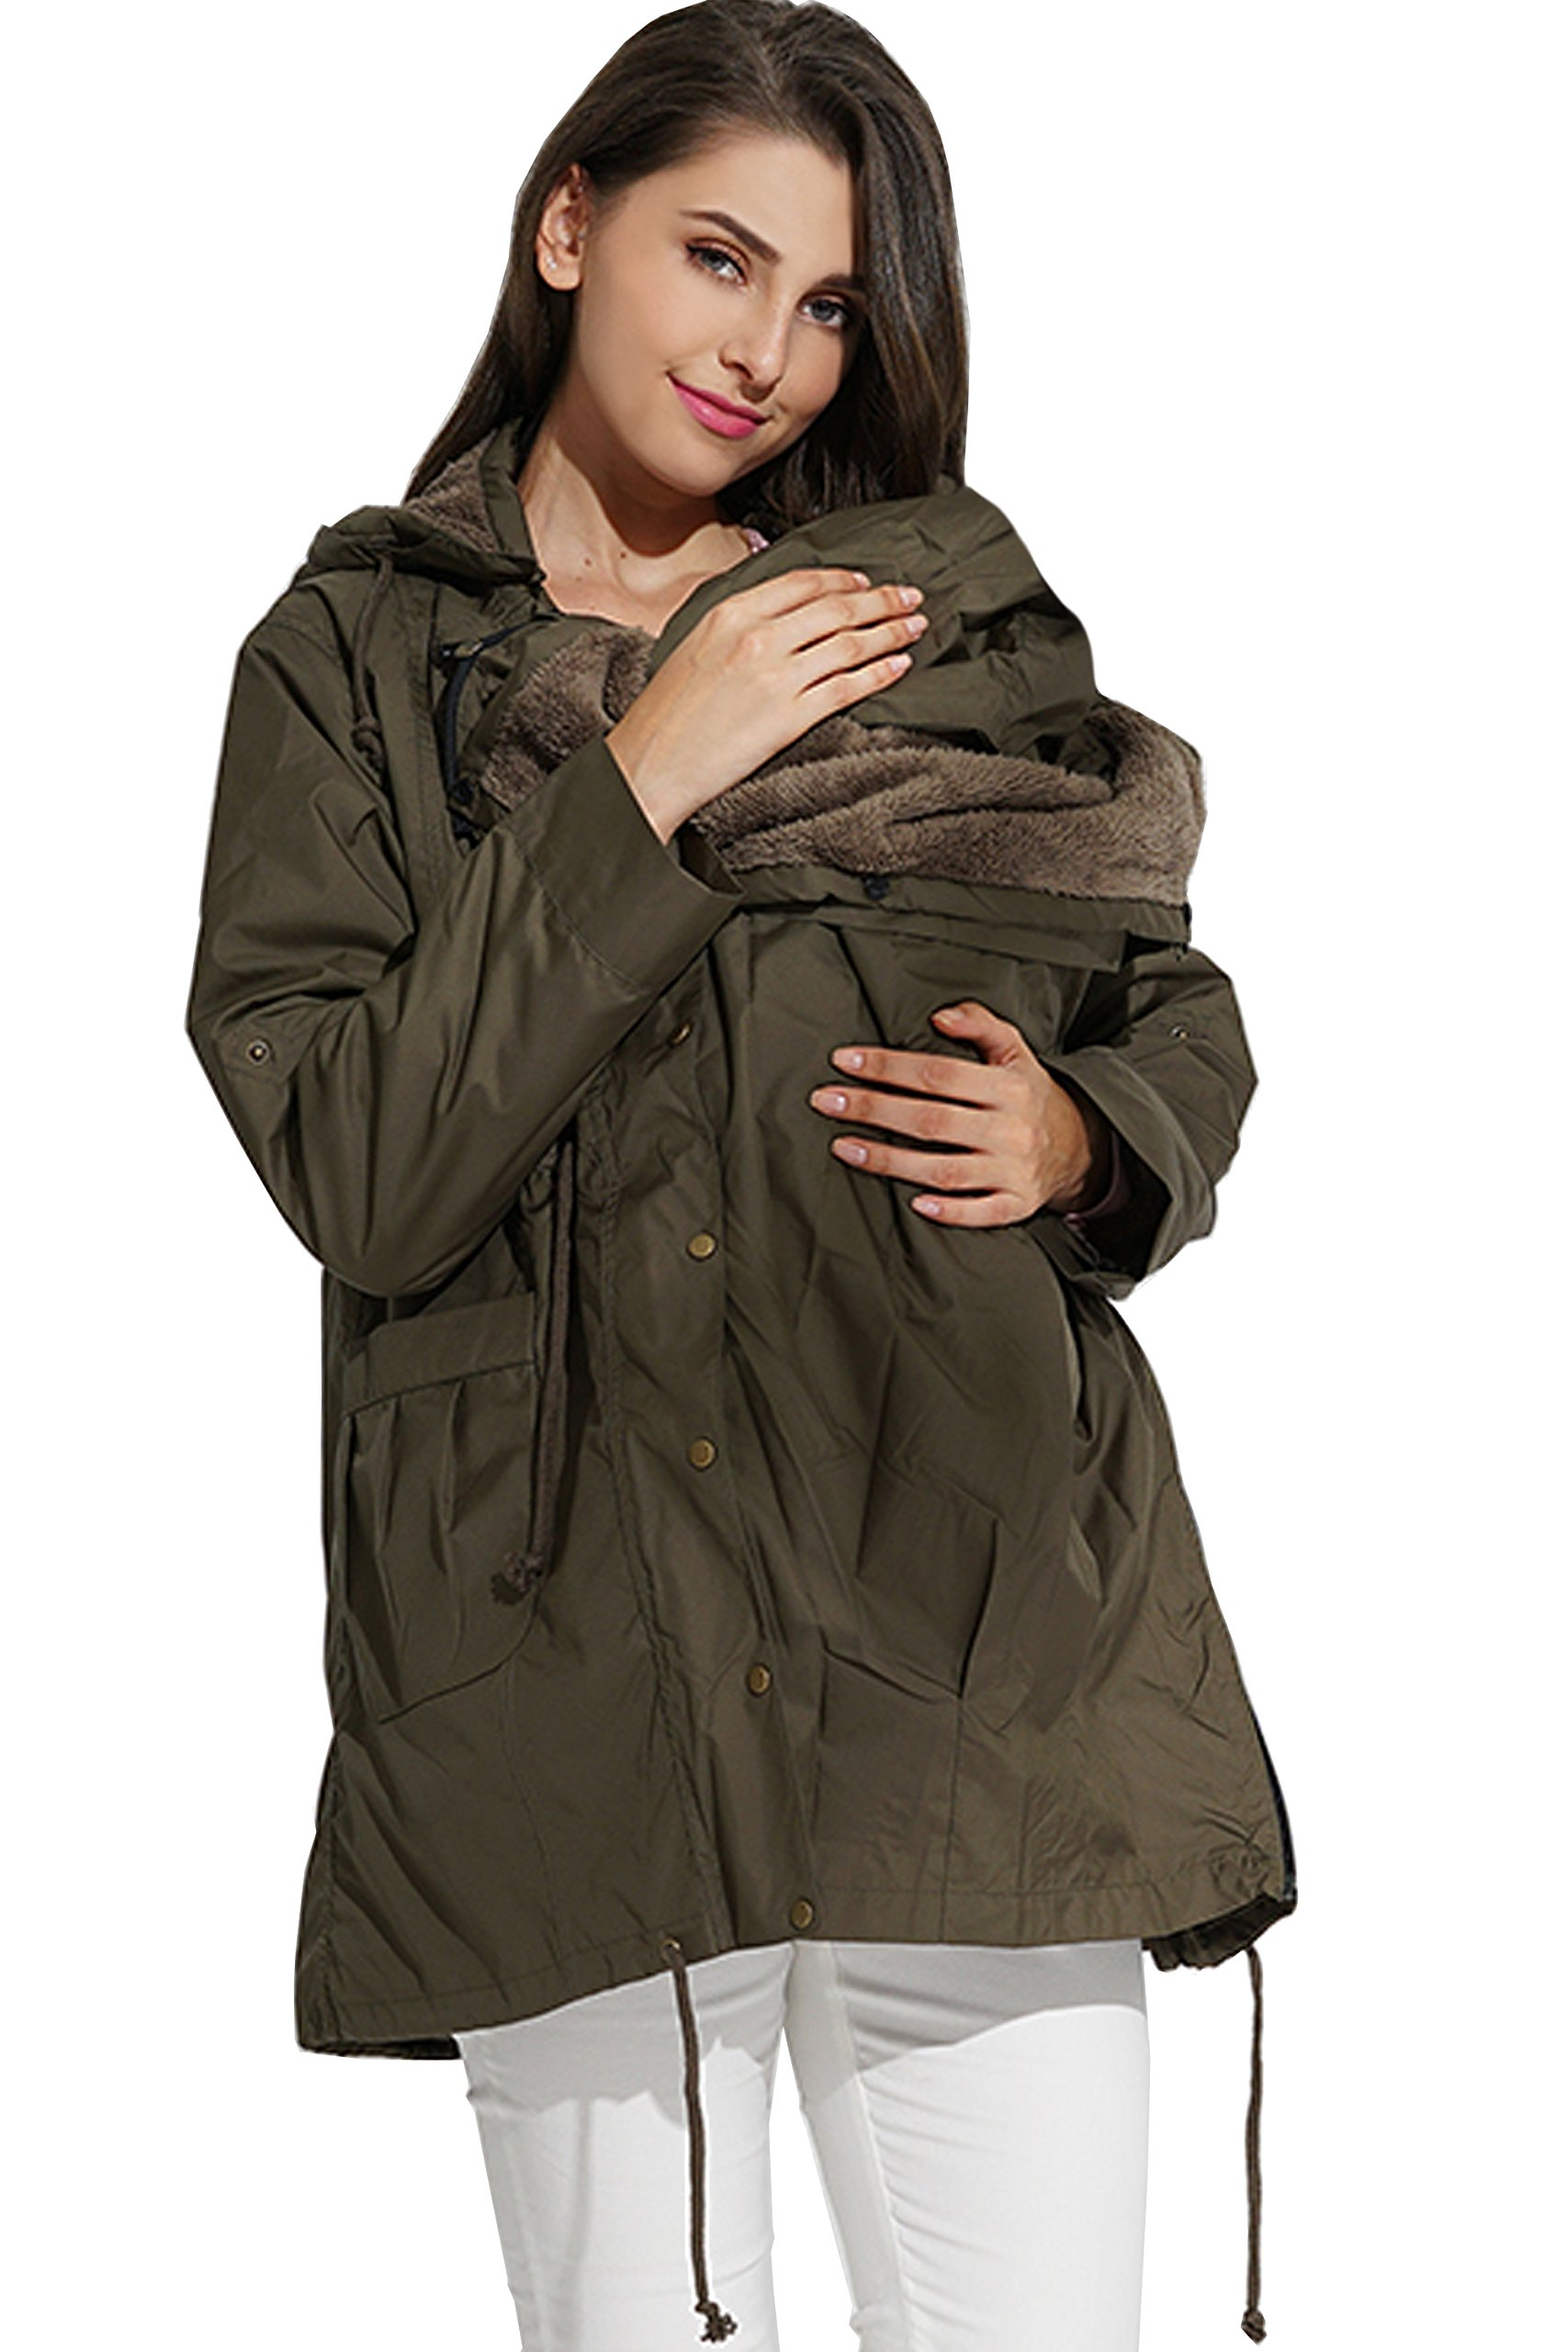 Sweet Mommy Multifunctional Mod's Style Mama Coat with a Baby Pouch S Khaki